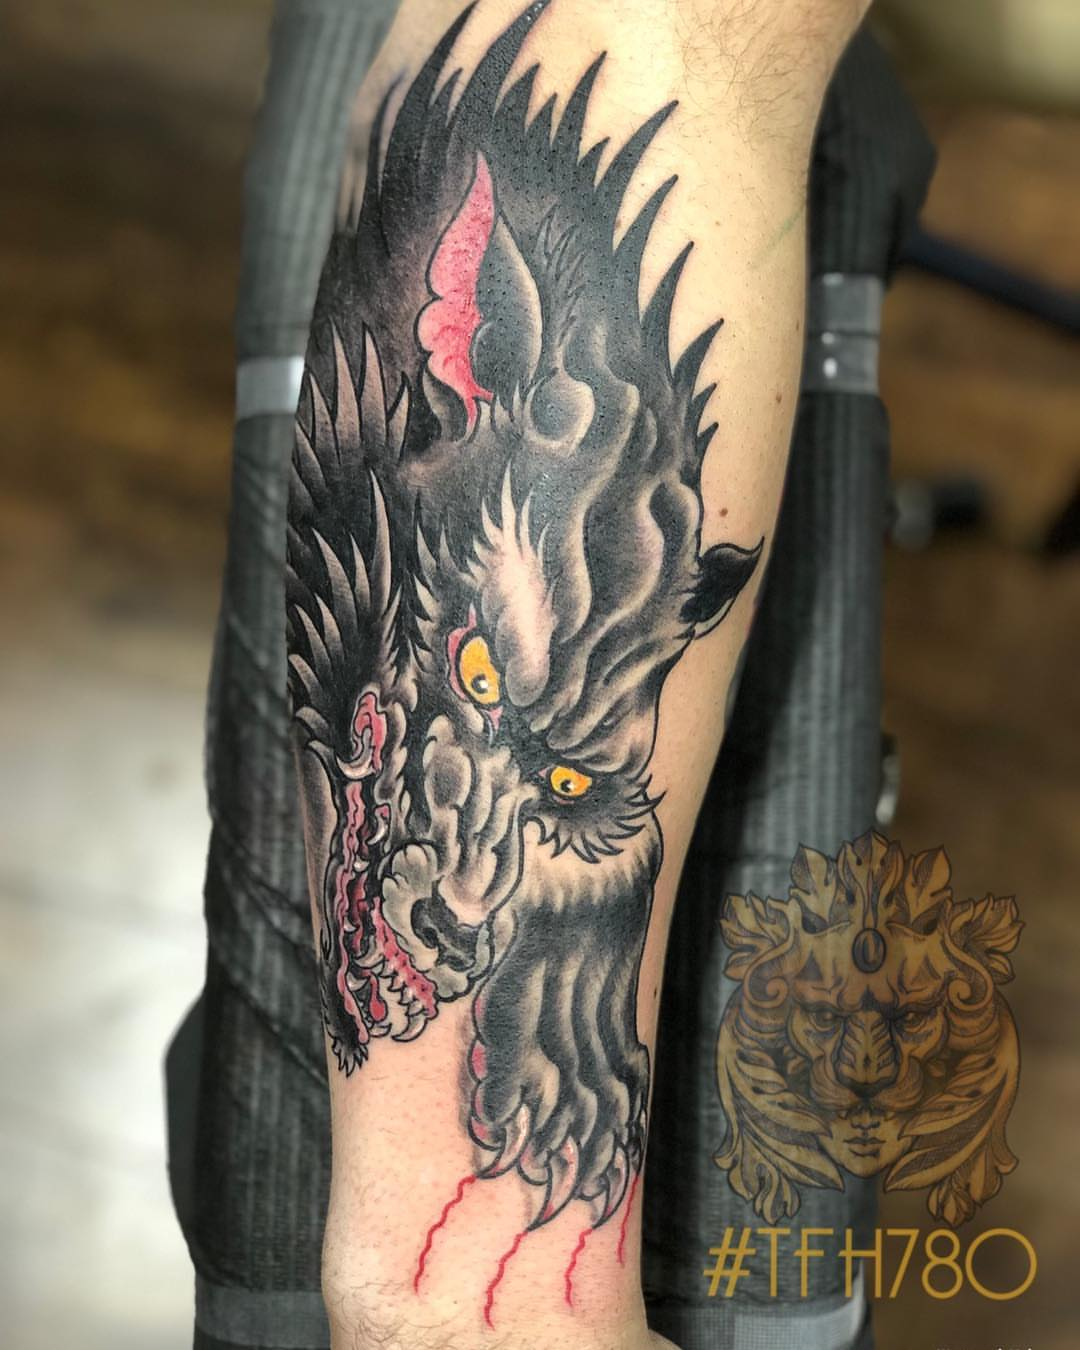 Shan Claydon Tattoo 2019 Okanagan Tattoo Show & Brewfest Artist